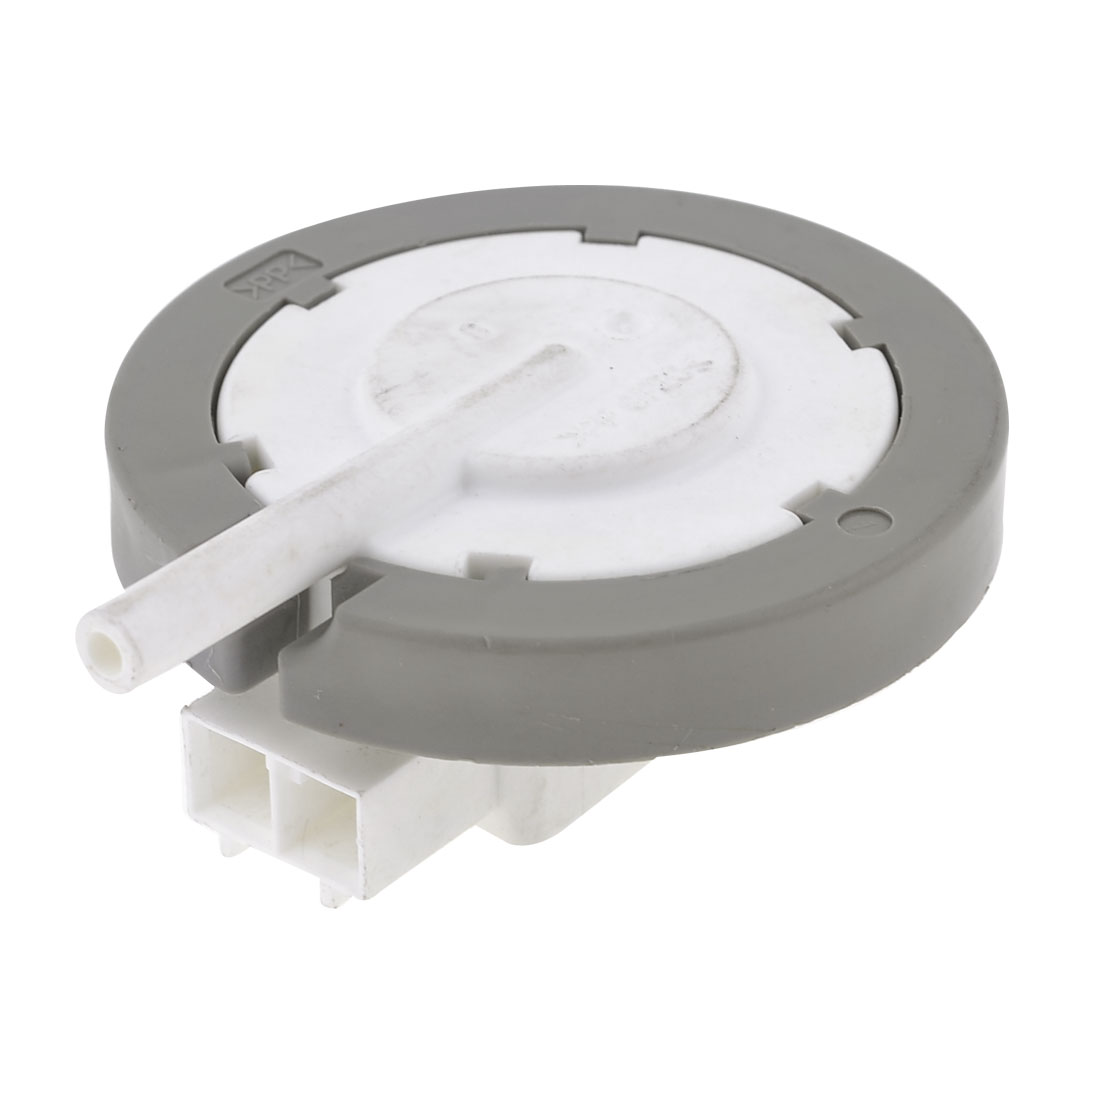 Replaceable 57mm Diameter 2 Terminal Water Level Switch for Panasonic Washing Machine